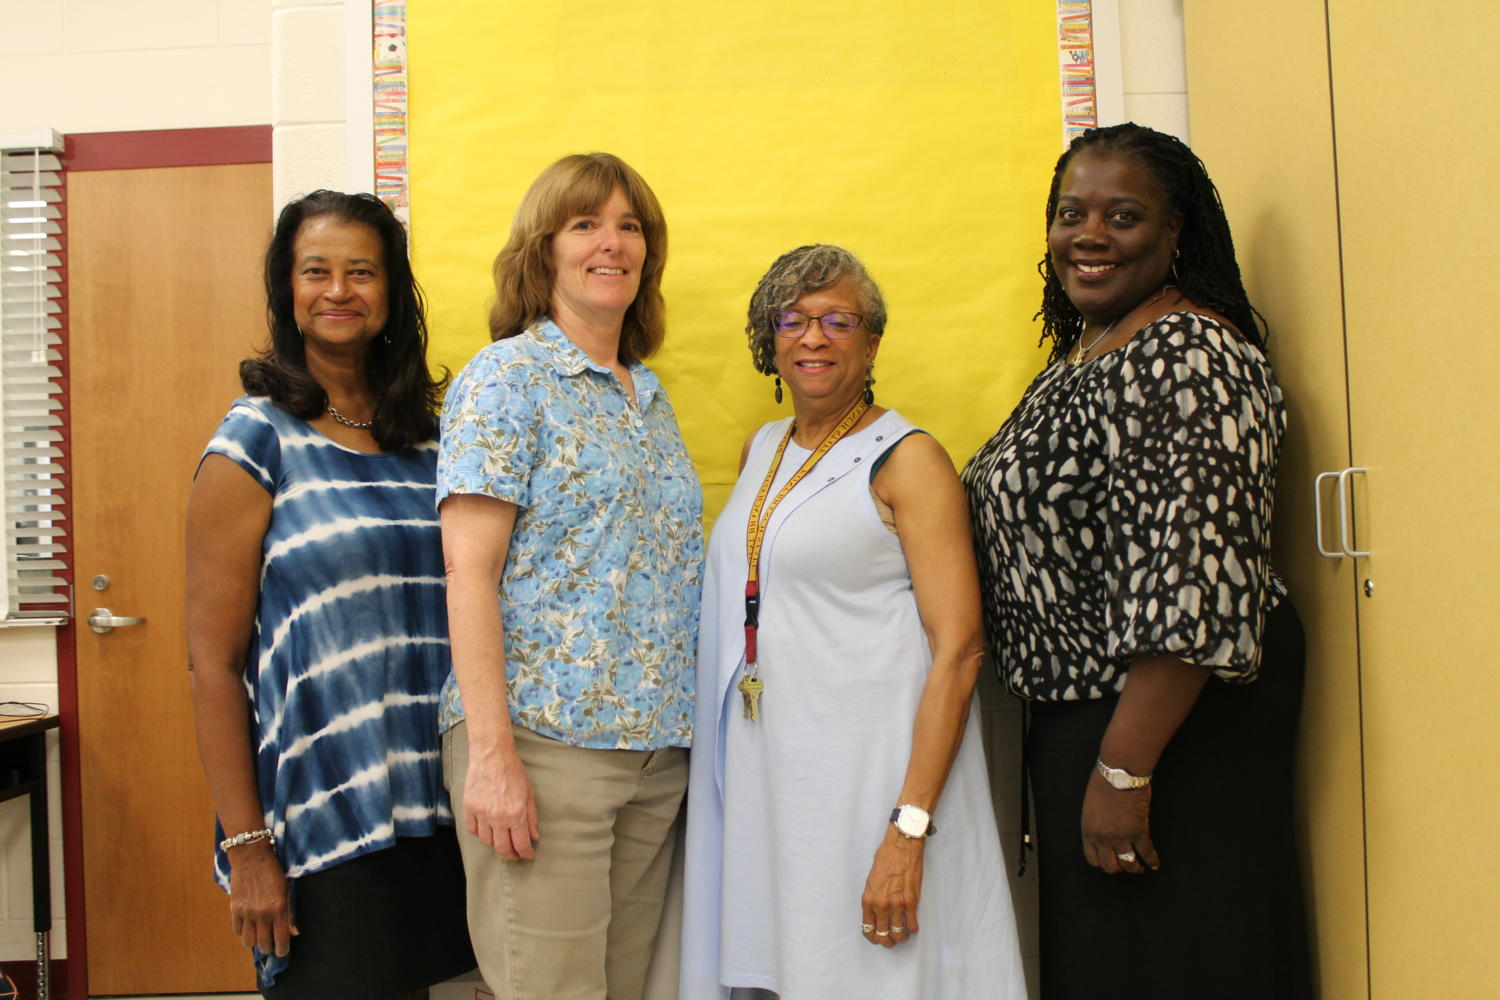 This+year%27s+retiring+staff+members+include+%28above%29+Mrs.+Pat+Gafford%2C+Ms.+Gloria+Cottman%2C+Mrs.+Barbara+Britton%2C+and+Ms.+Geraldine+Finch.+Retirees+Mrs.+Donna+Weber+and+Ms.+Marla+Frenzel+are+not+pictured.